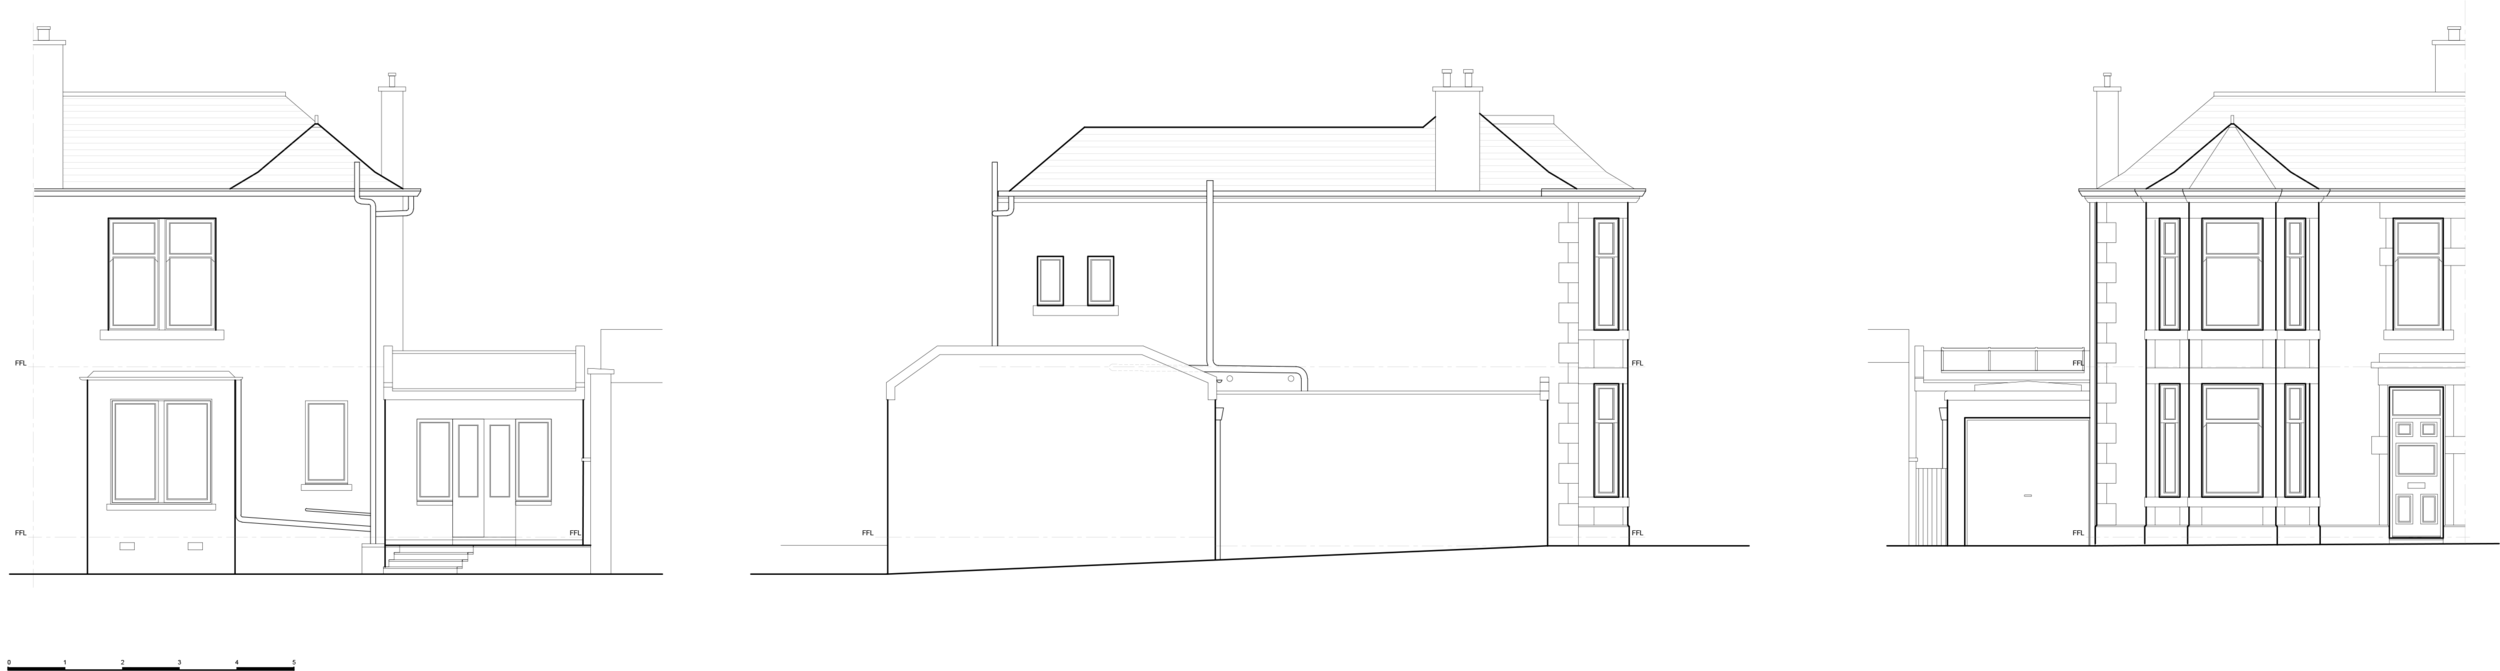 Elevations_Existing.png